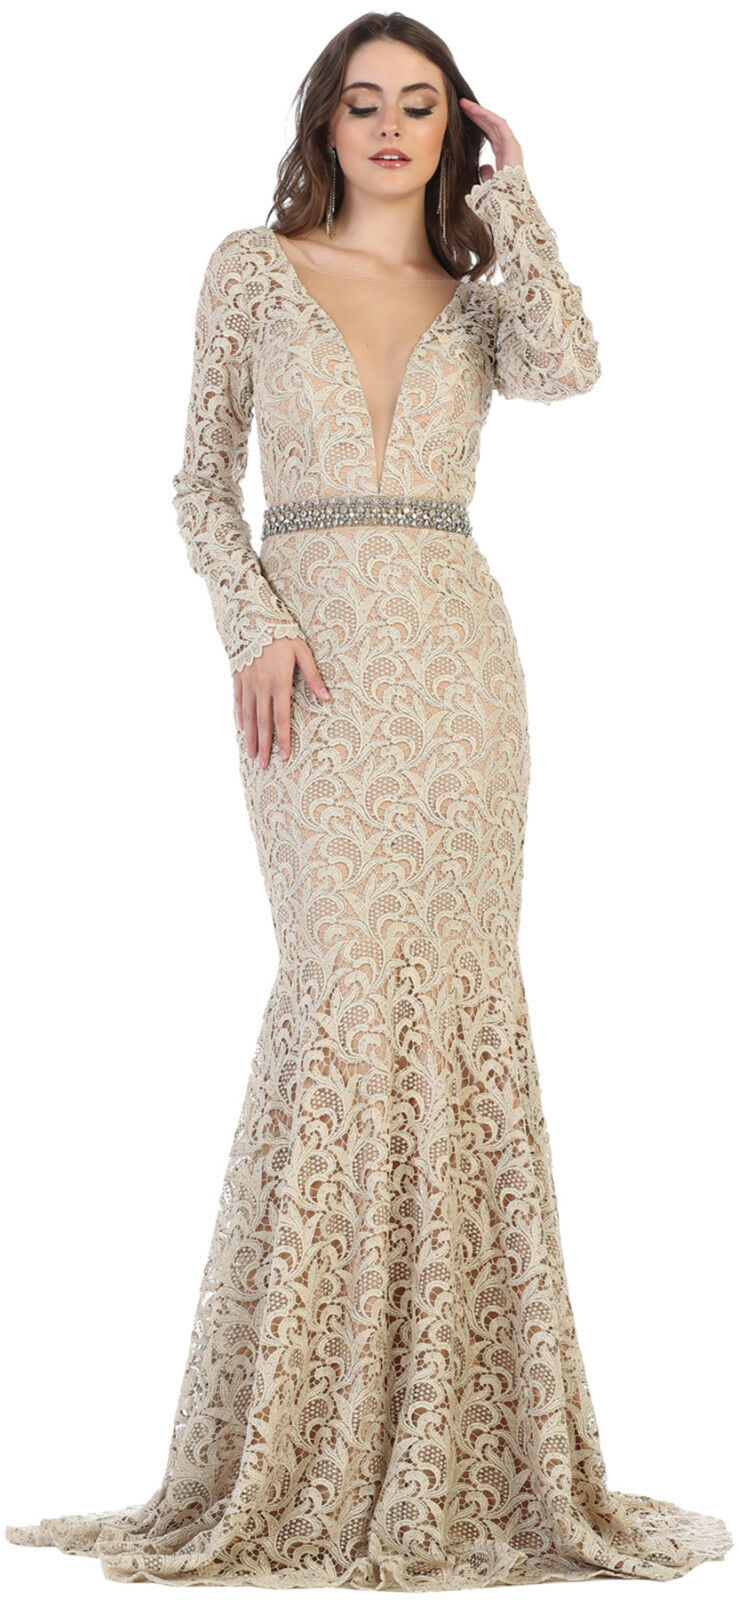 LACE EVENING GOWN LONG SLEEVE SWEET 16 SPECIAL OCCASION PROM DRESS RED CARPET